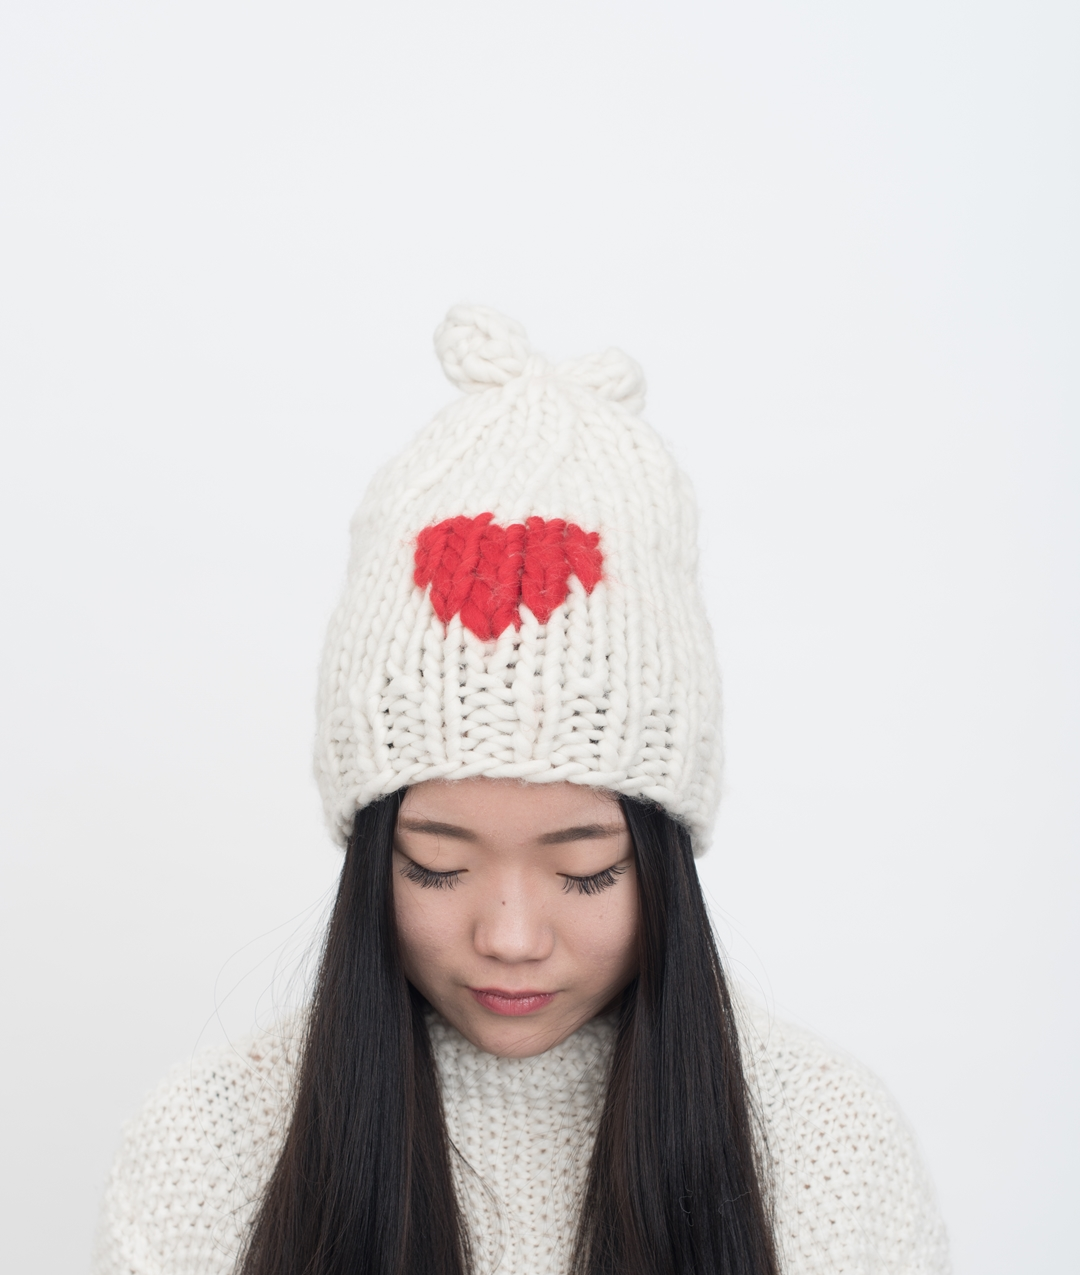 Hats and Beanies - Wool - Strange Love Beanie - 1